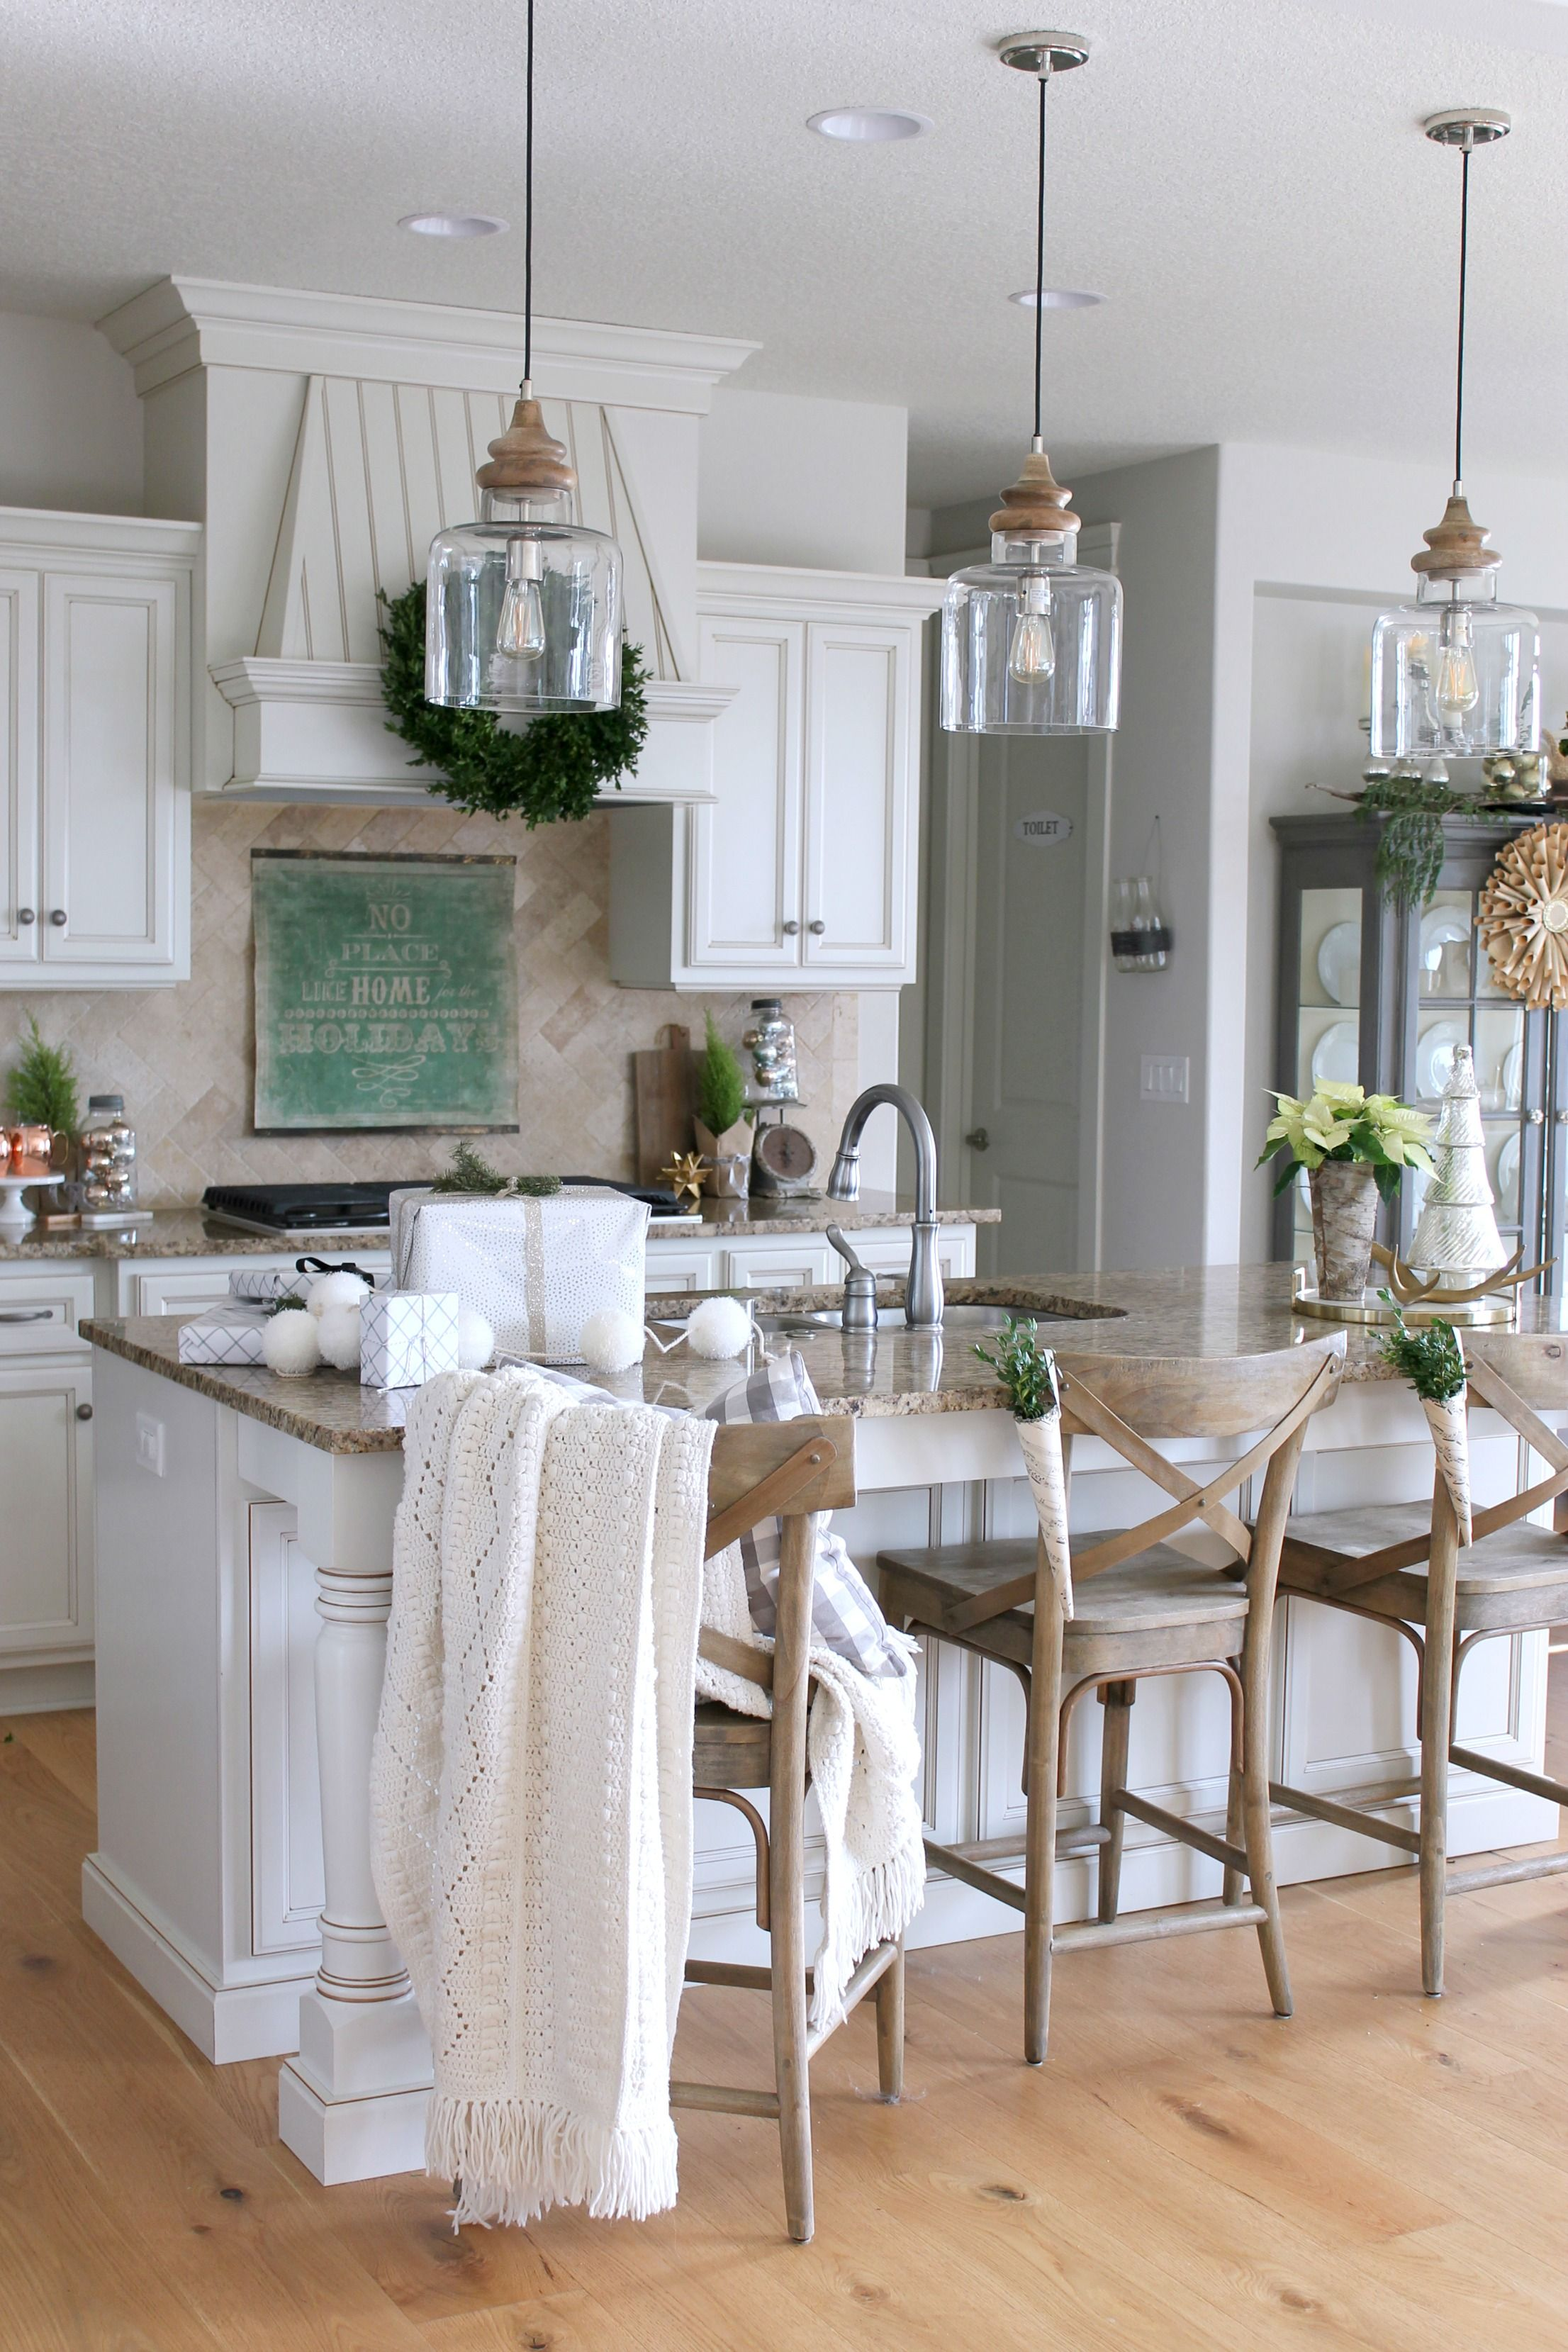 Farmhouse Kitchen Lights Jbfurniture Store Jbfurniture Store